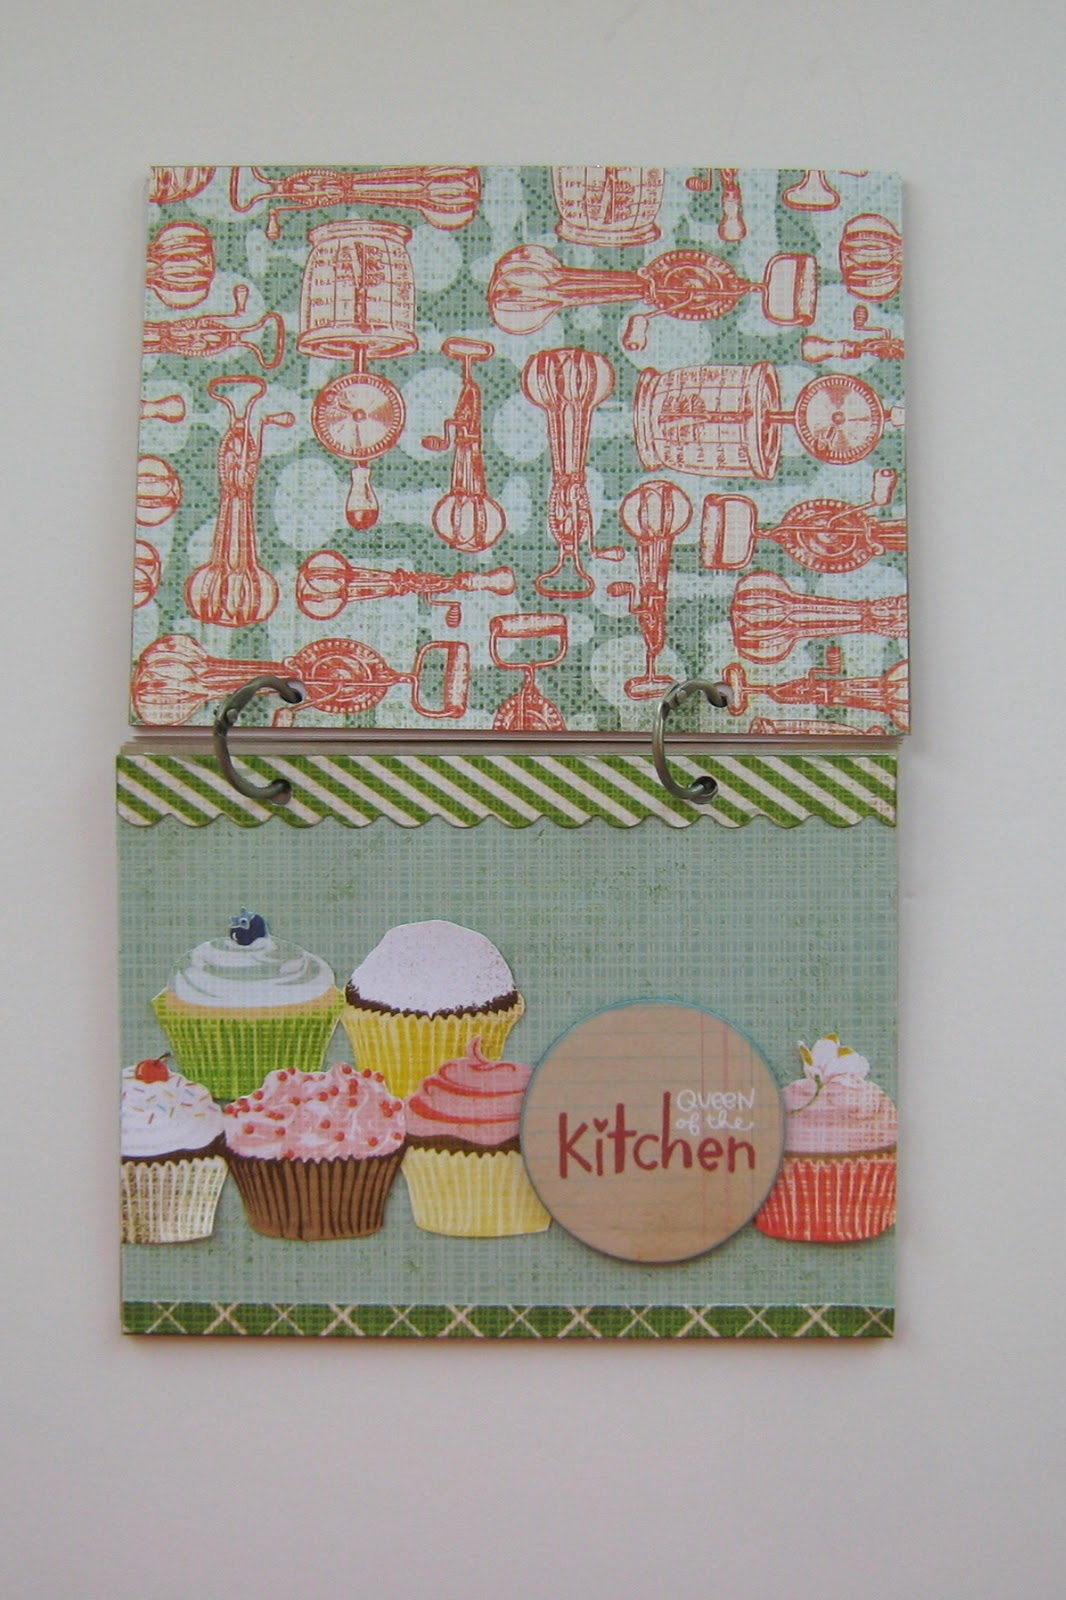 How to scrapbook a recipe book -  Covers For My Book The Most Time Consuming Part Of This Project Was Hand Cutting The Cupcakes From The Bg Patterned Paper You Could Always Use